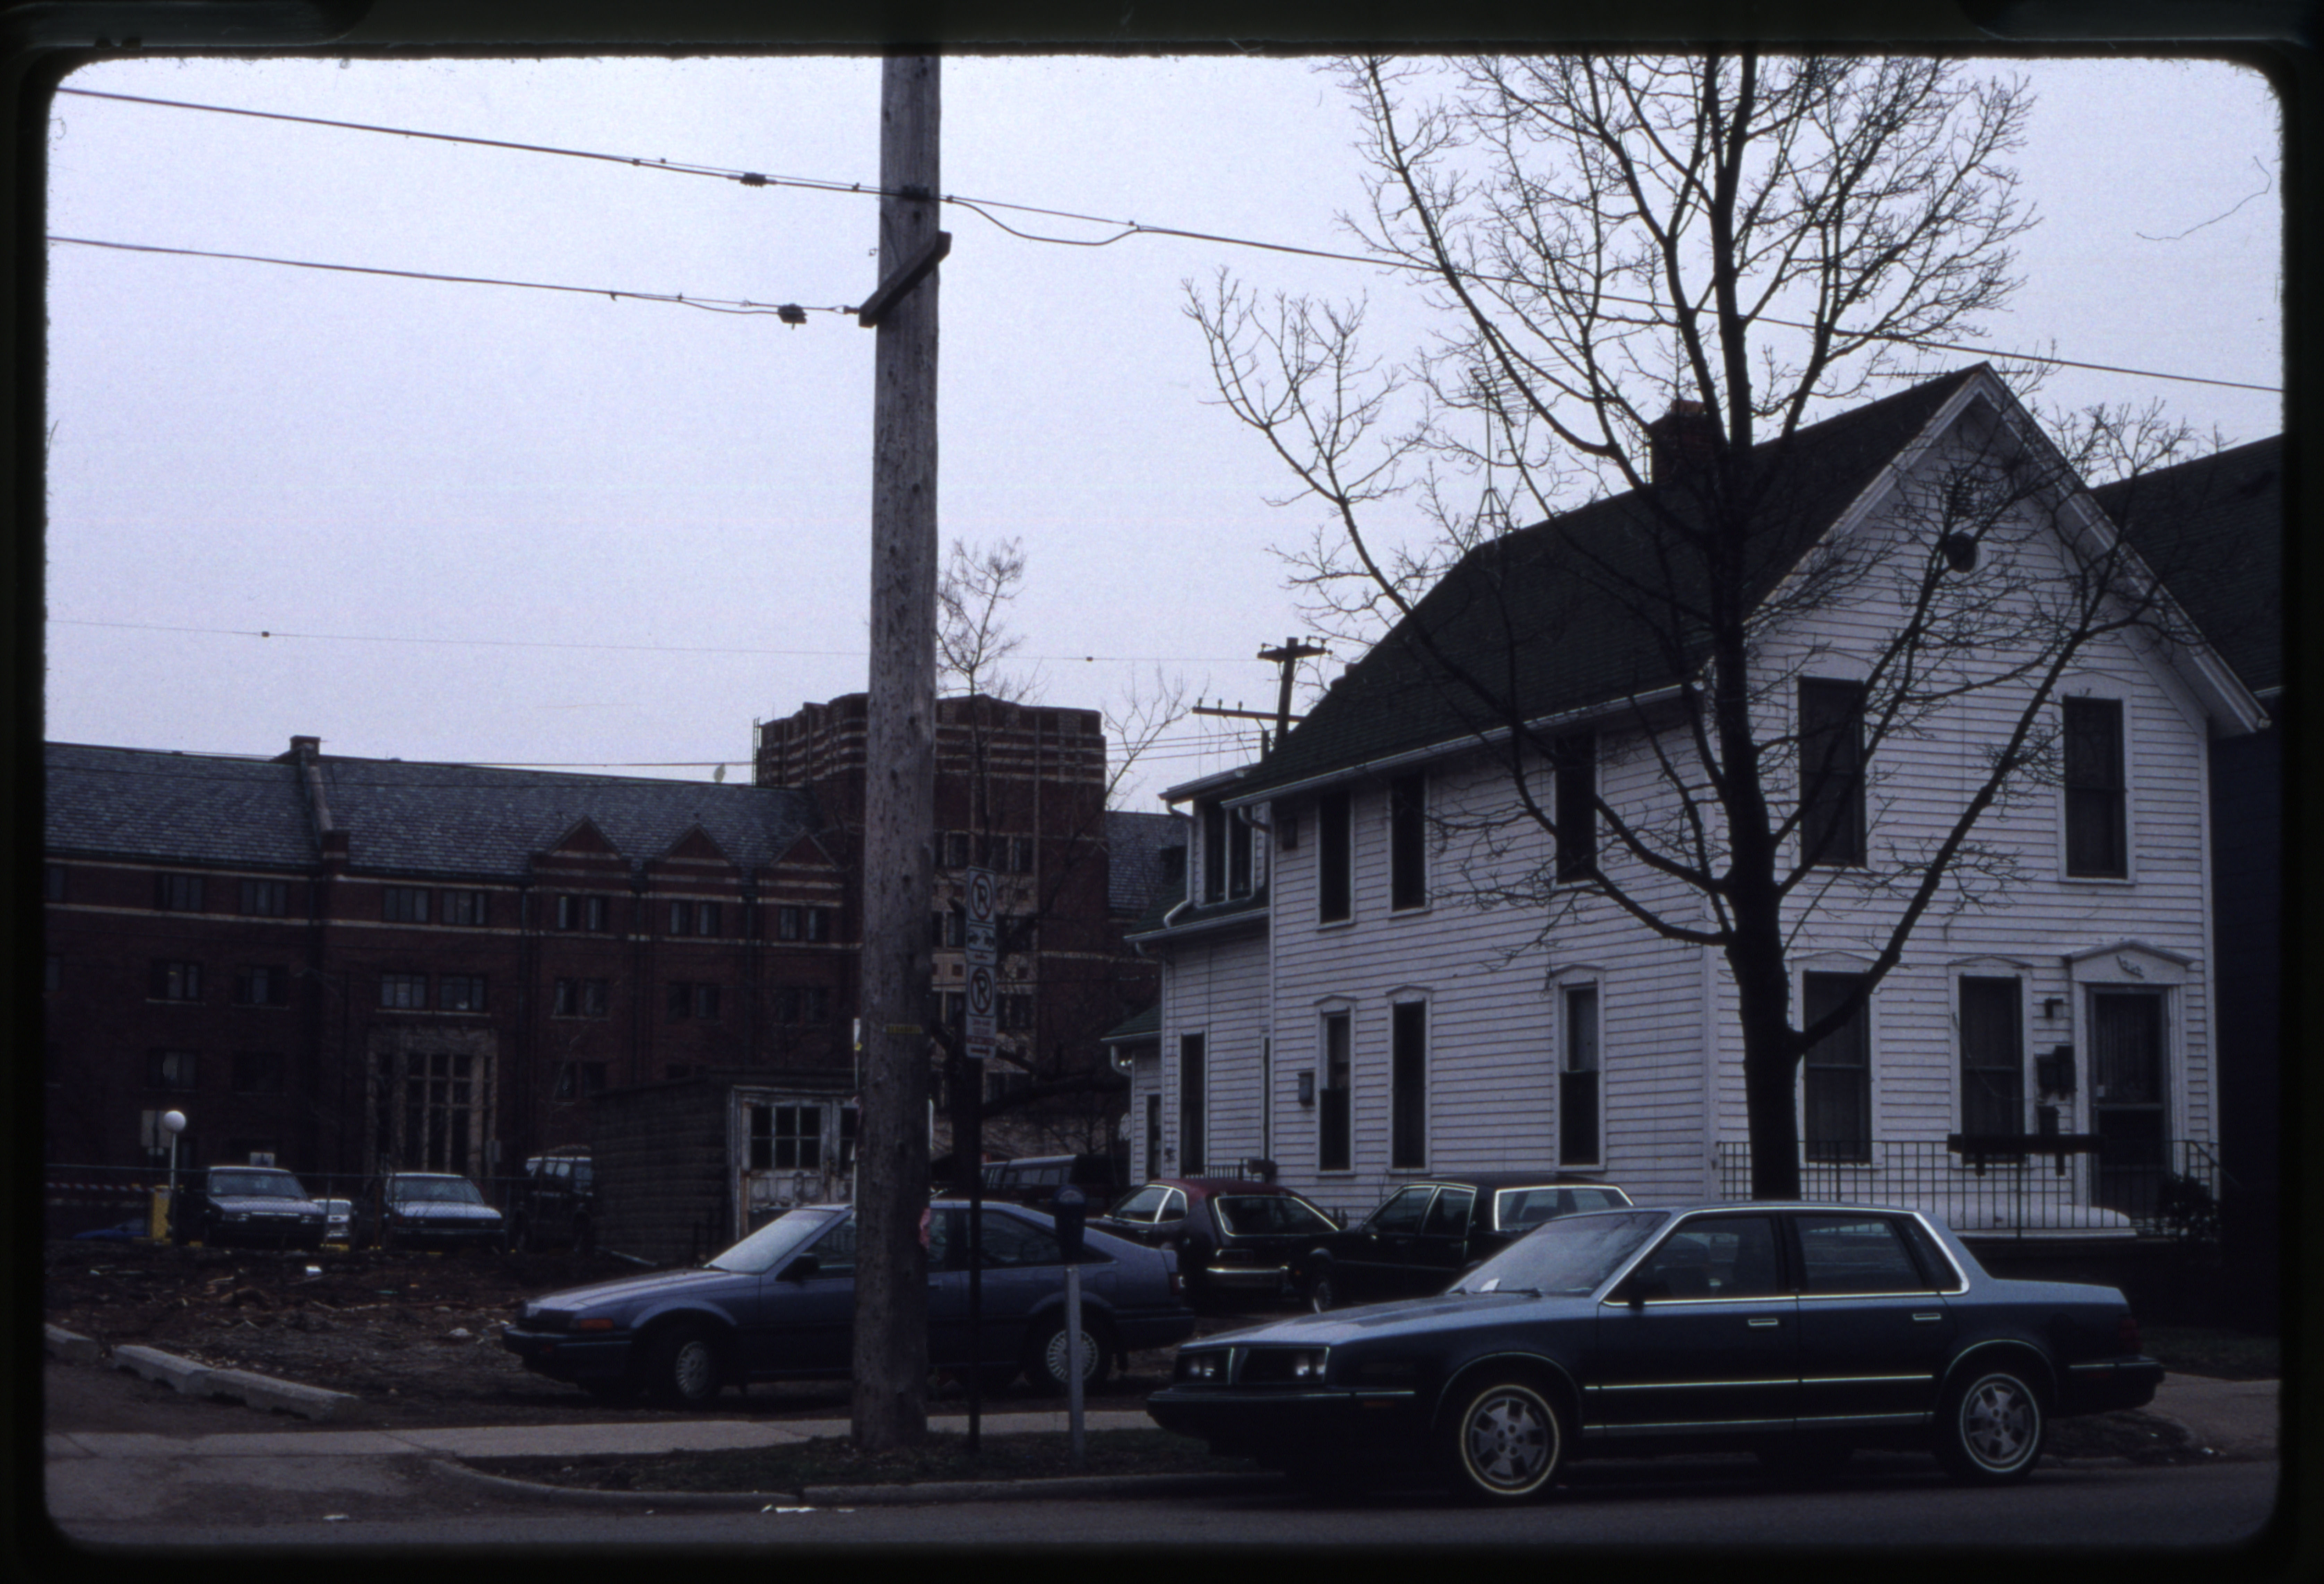 535 S Division St, 1992 image